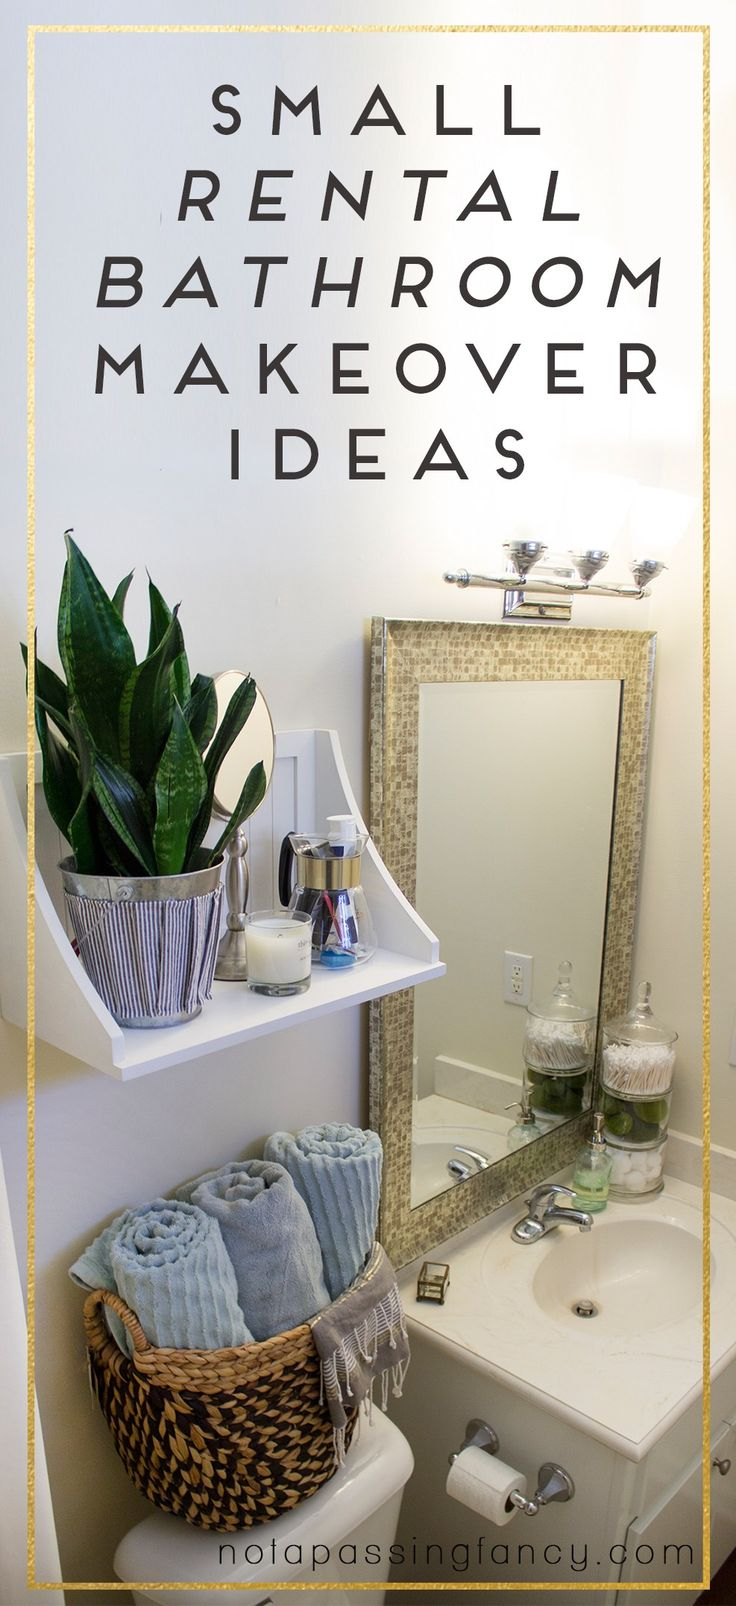 25+ Best Rental Bathroom Ideas On Pinterest | Small Rental Bathroom, Rental  Decorating And Cheap Bathrooms Part 49